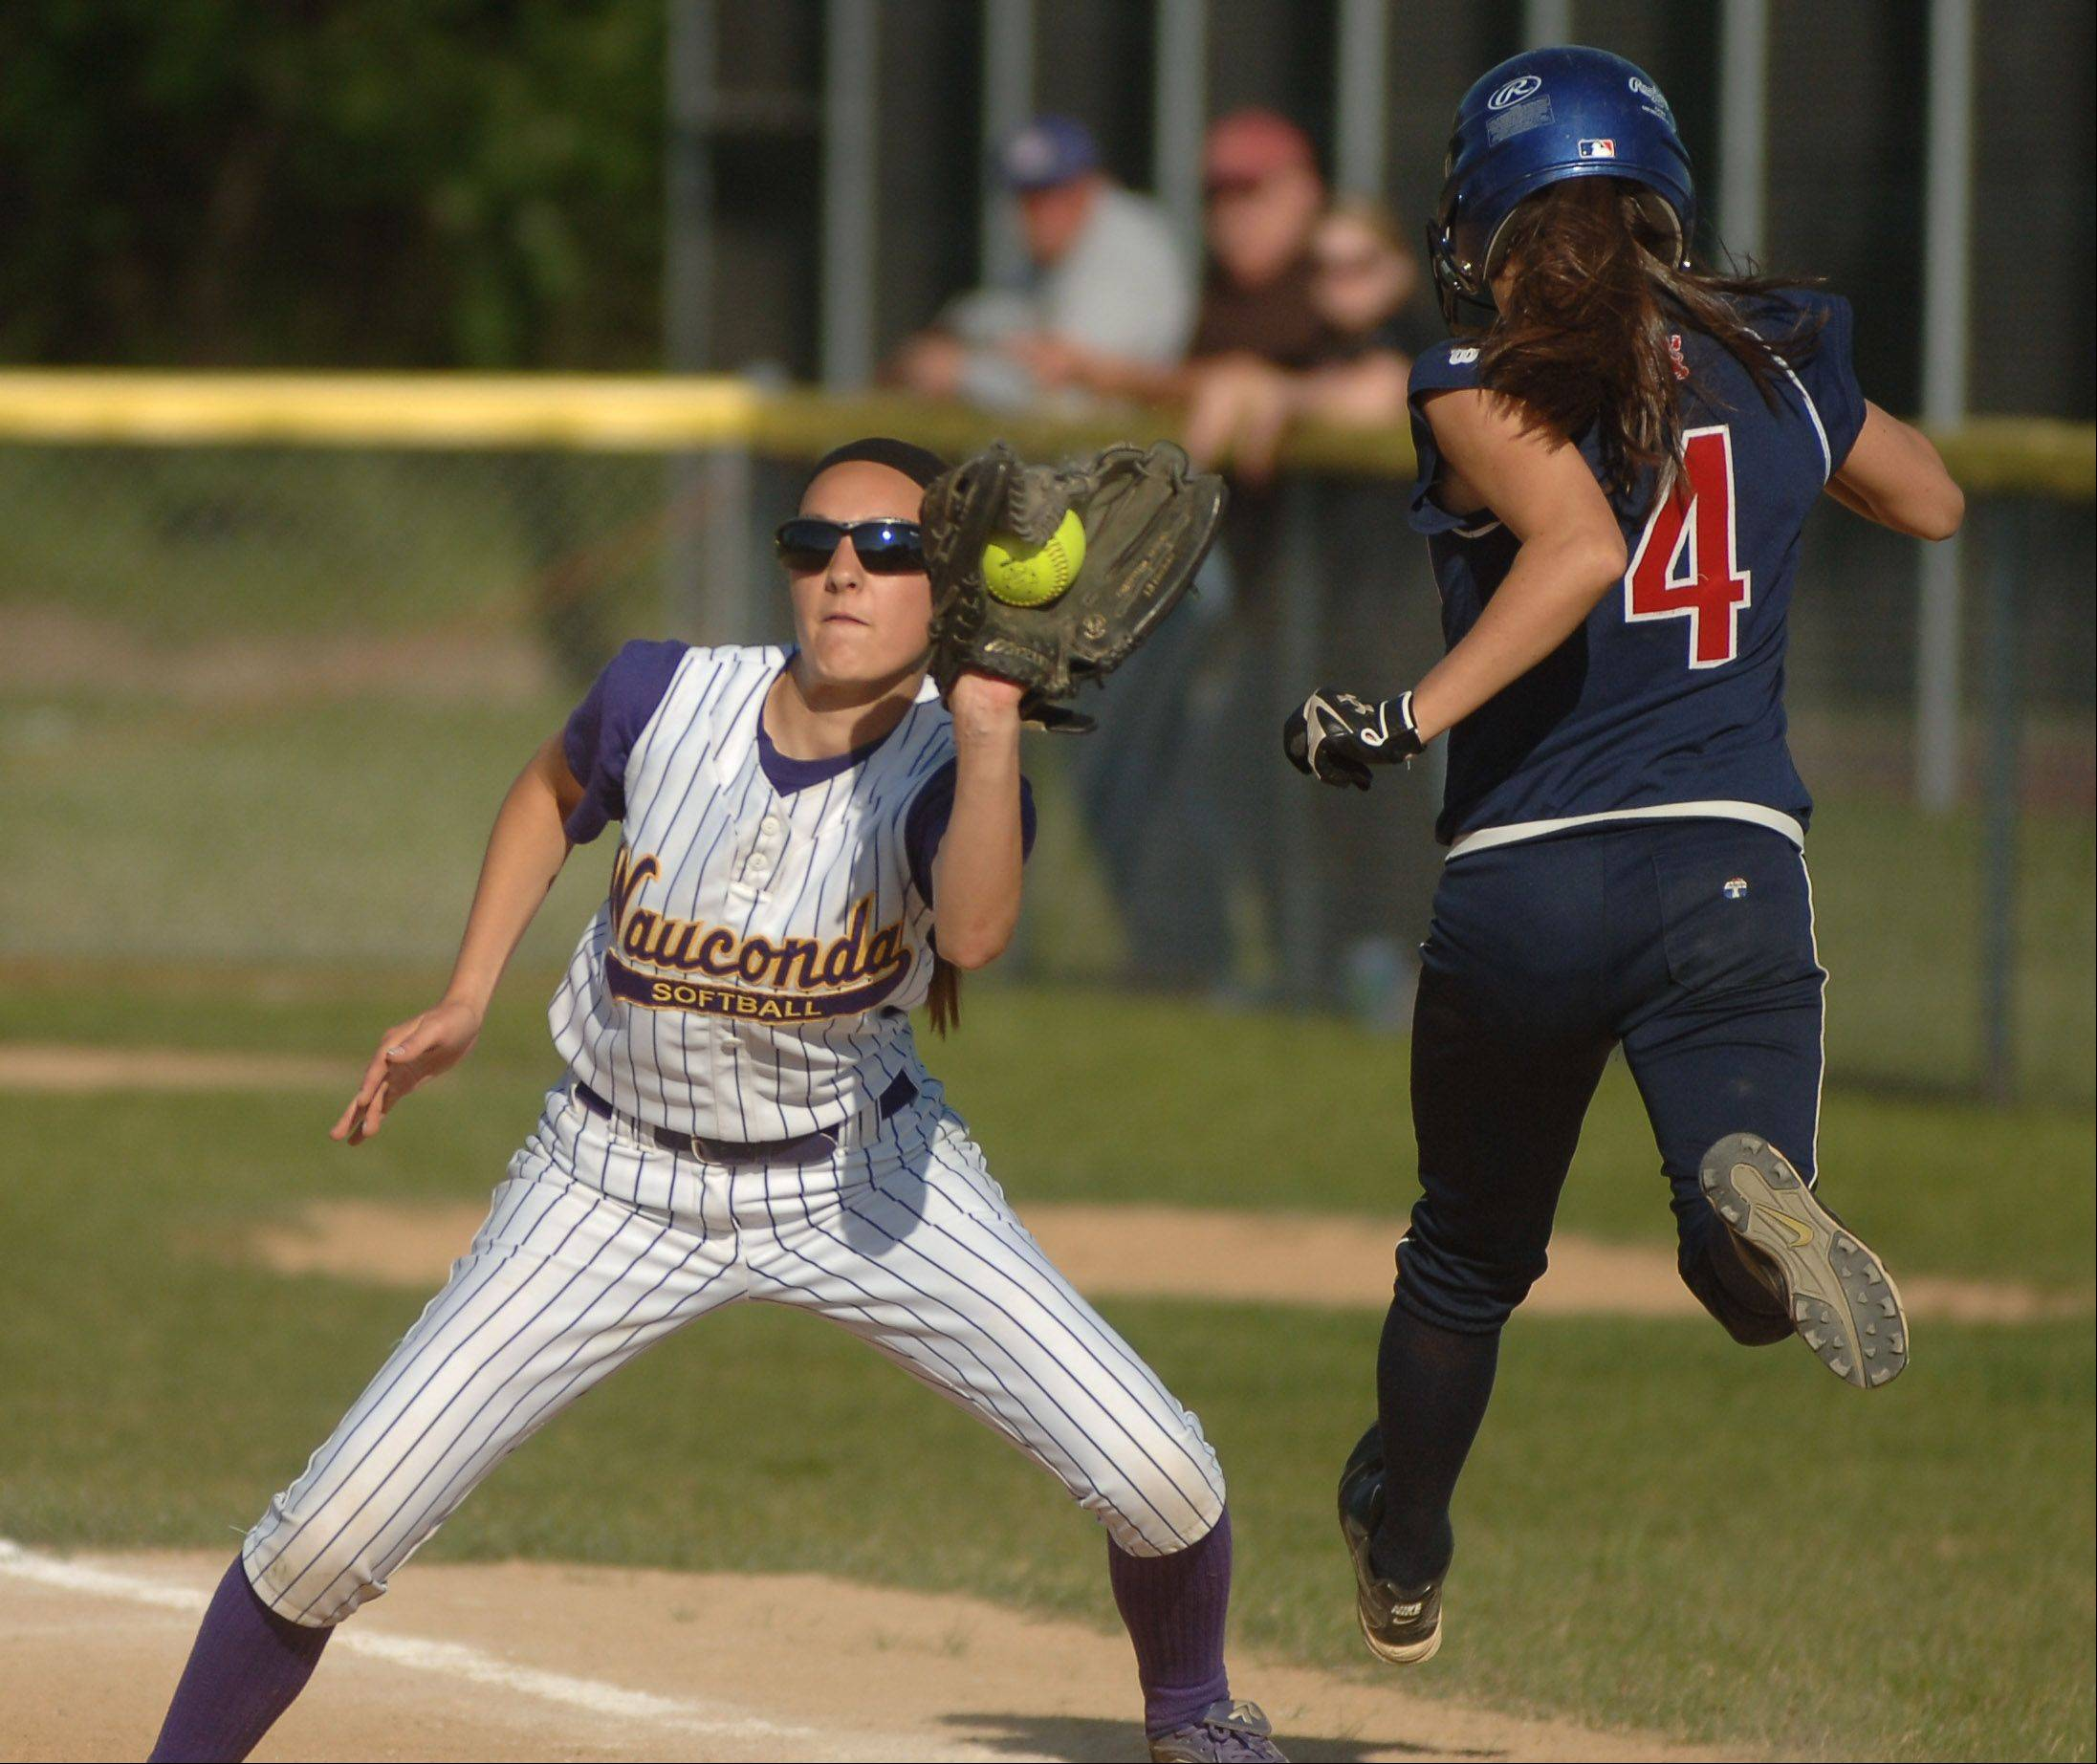 St. Viator's Colleen Dunne, 4, makes it safely to first base ahead of the throw to Wauconda's Megan Grobelny during Monday's regional softball game in Wauconda.